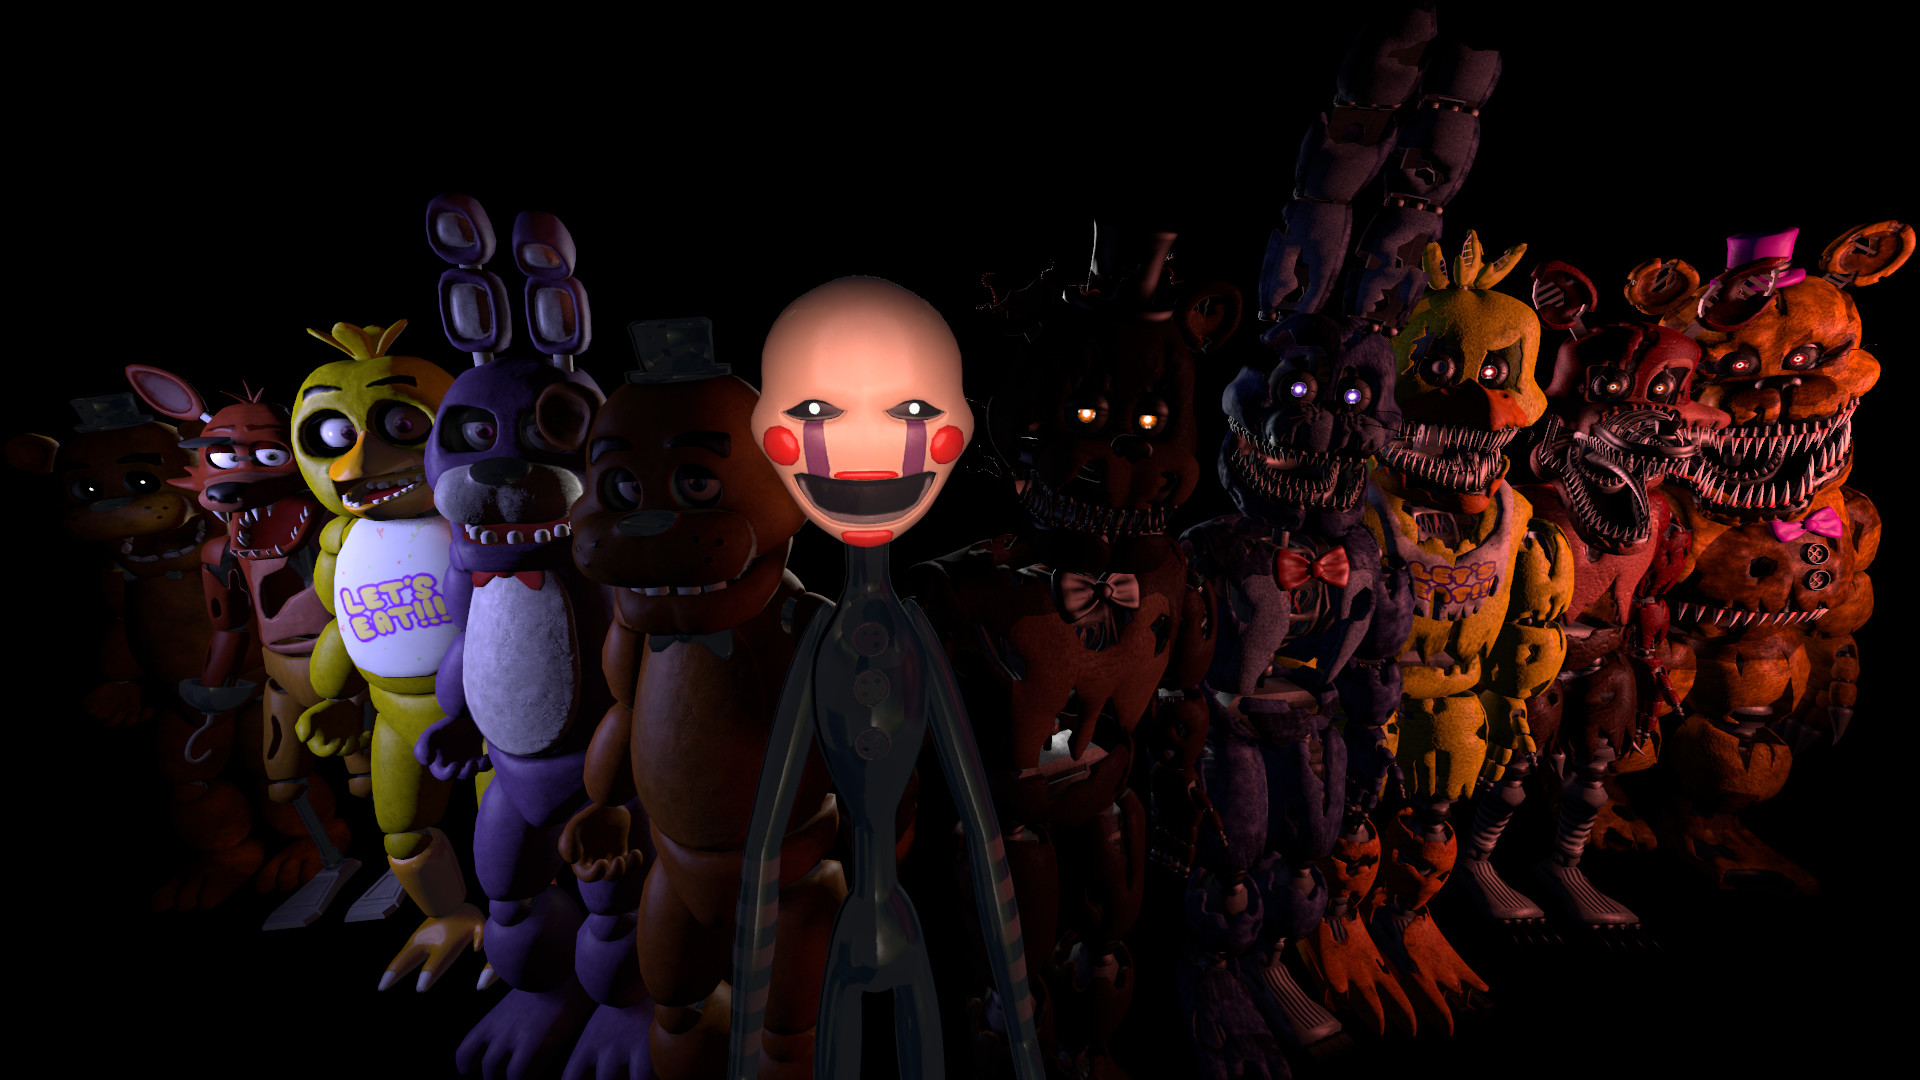 Backgrounds In High Quality: FNAF by Ila Greaney, 07/11/2016